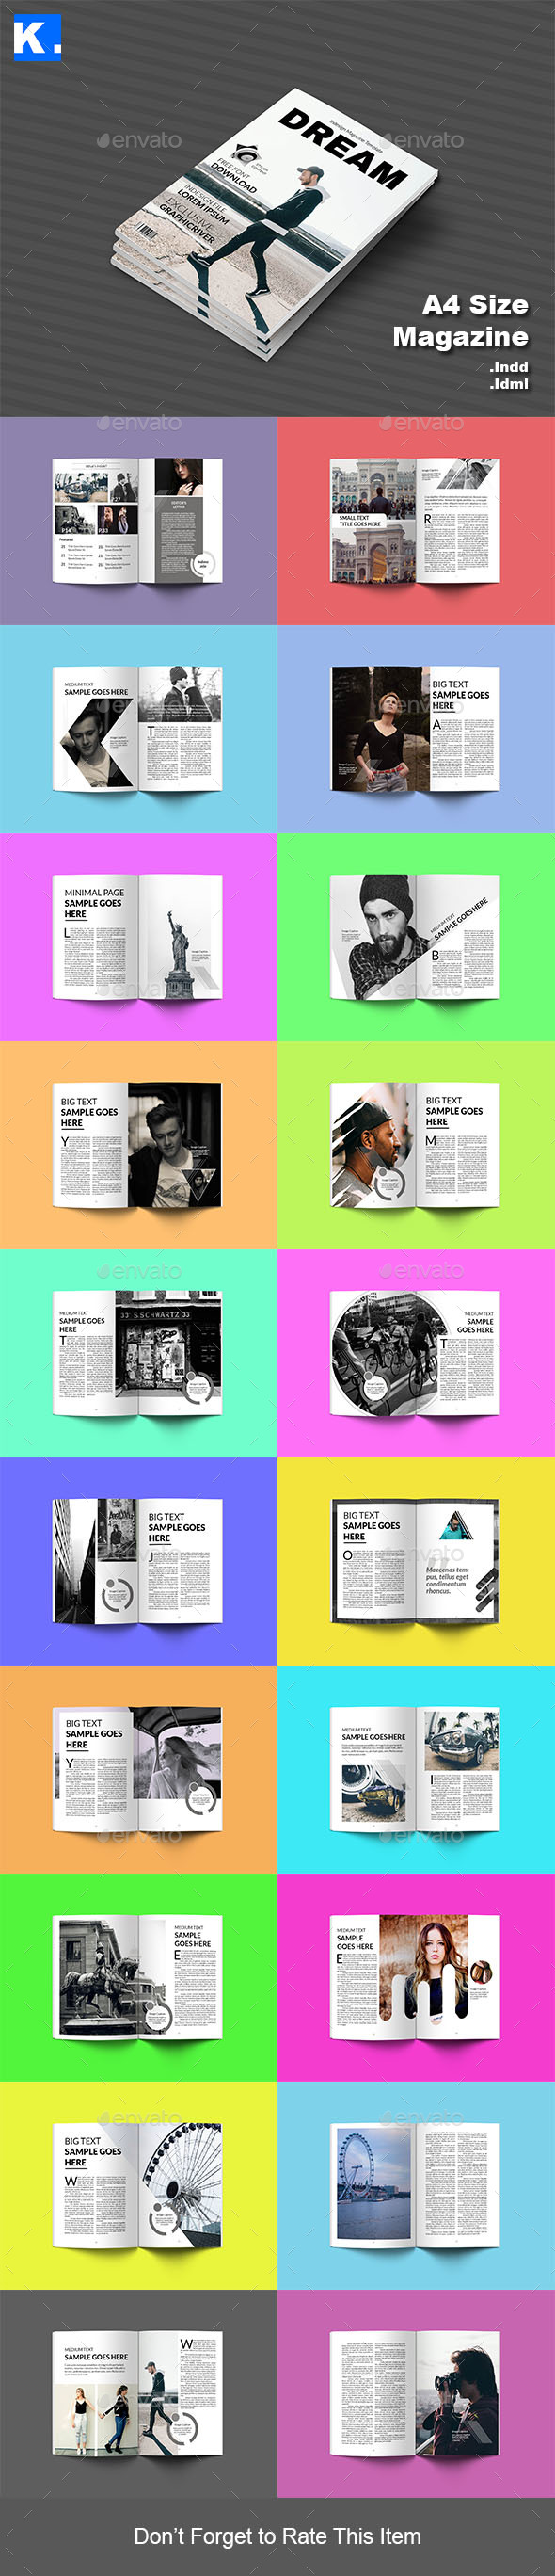 Indesign Magazine Template 5 - Magazines Print Templates